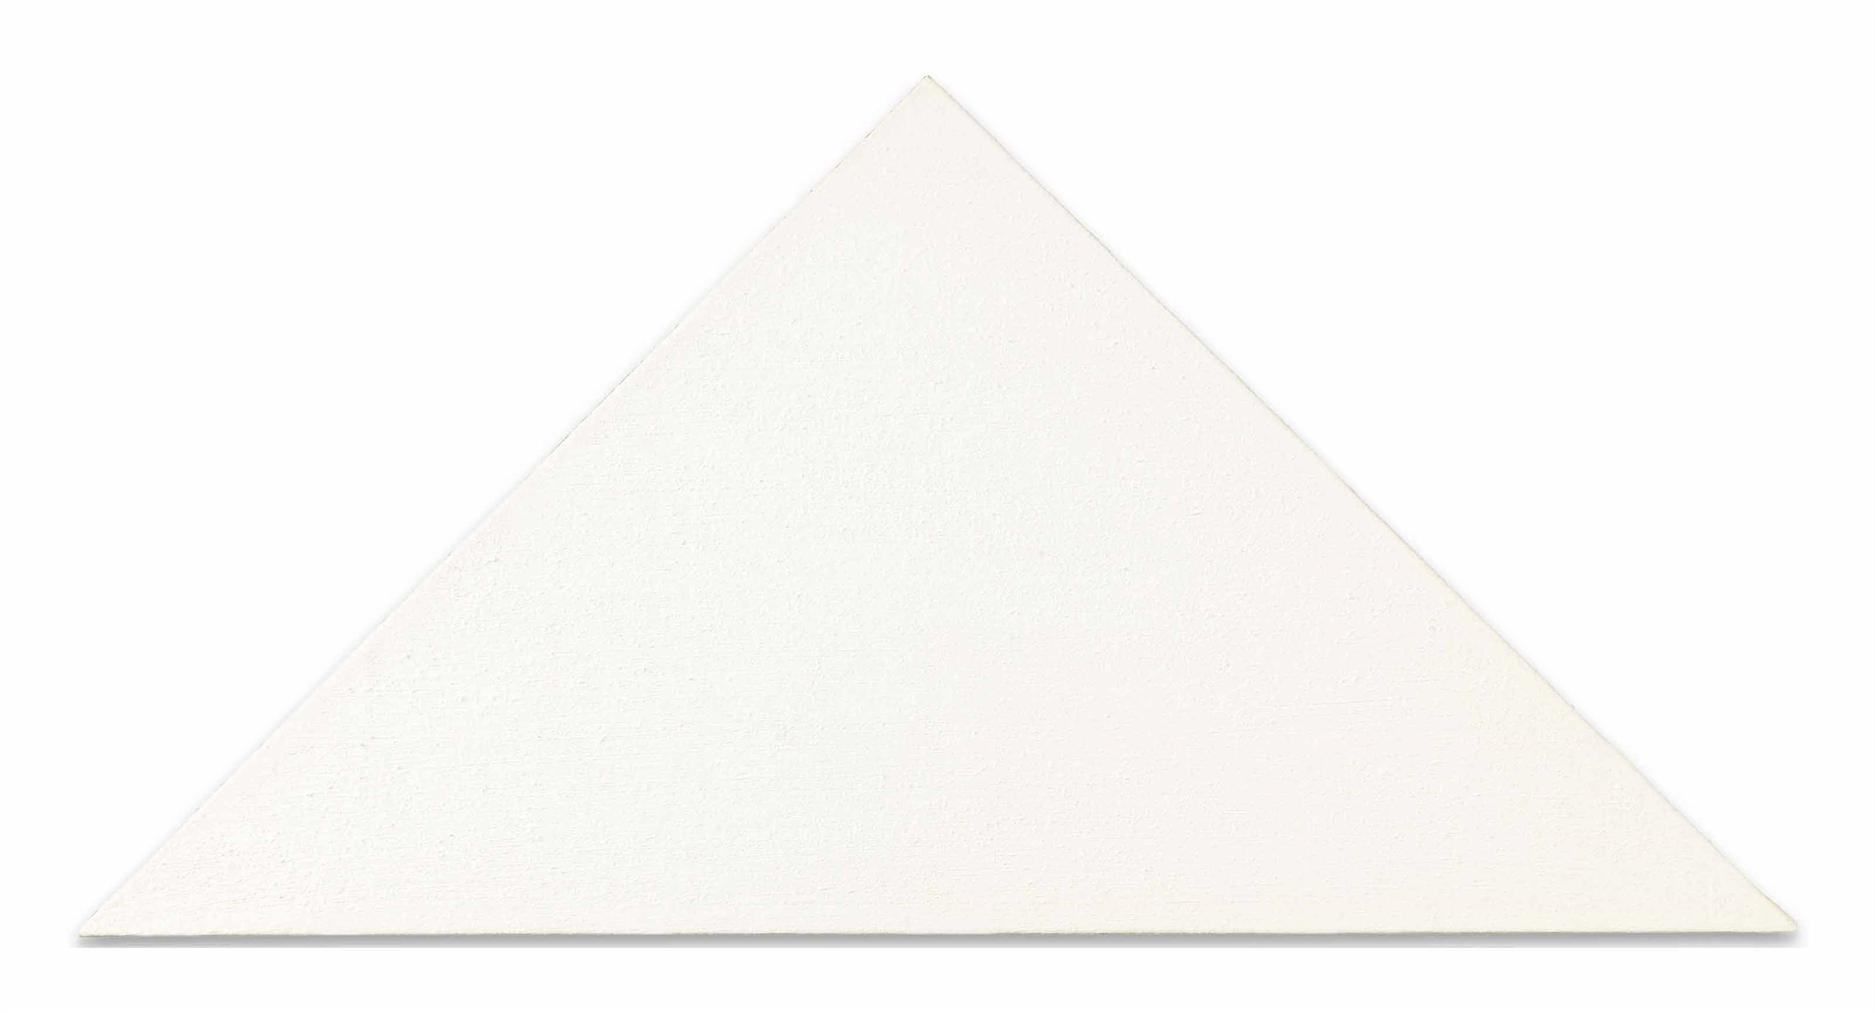 Blinky Palermo-Ohne Titel (Weisses Dreieck) [Untitled (White Triangle)]-1966